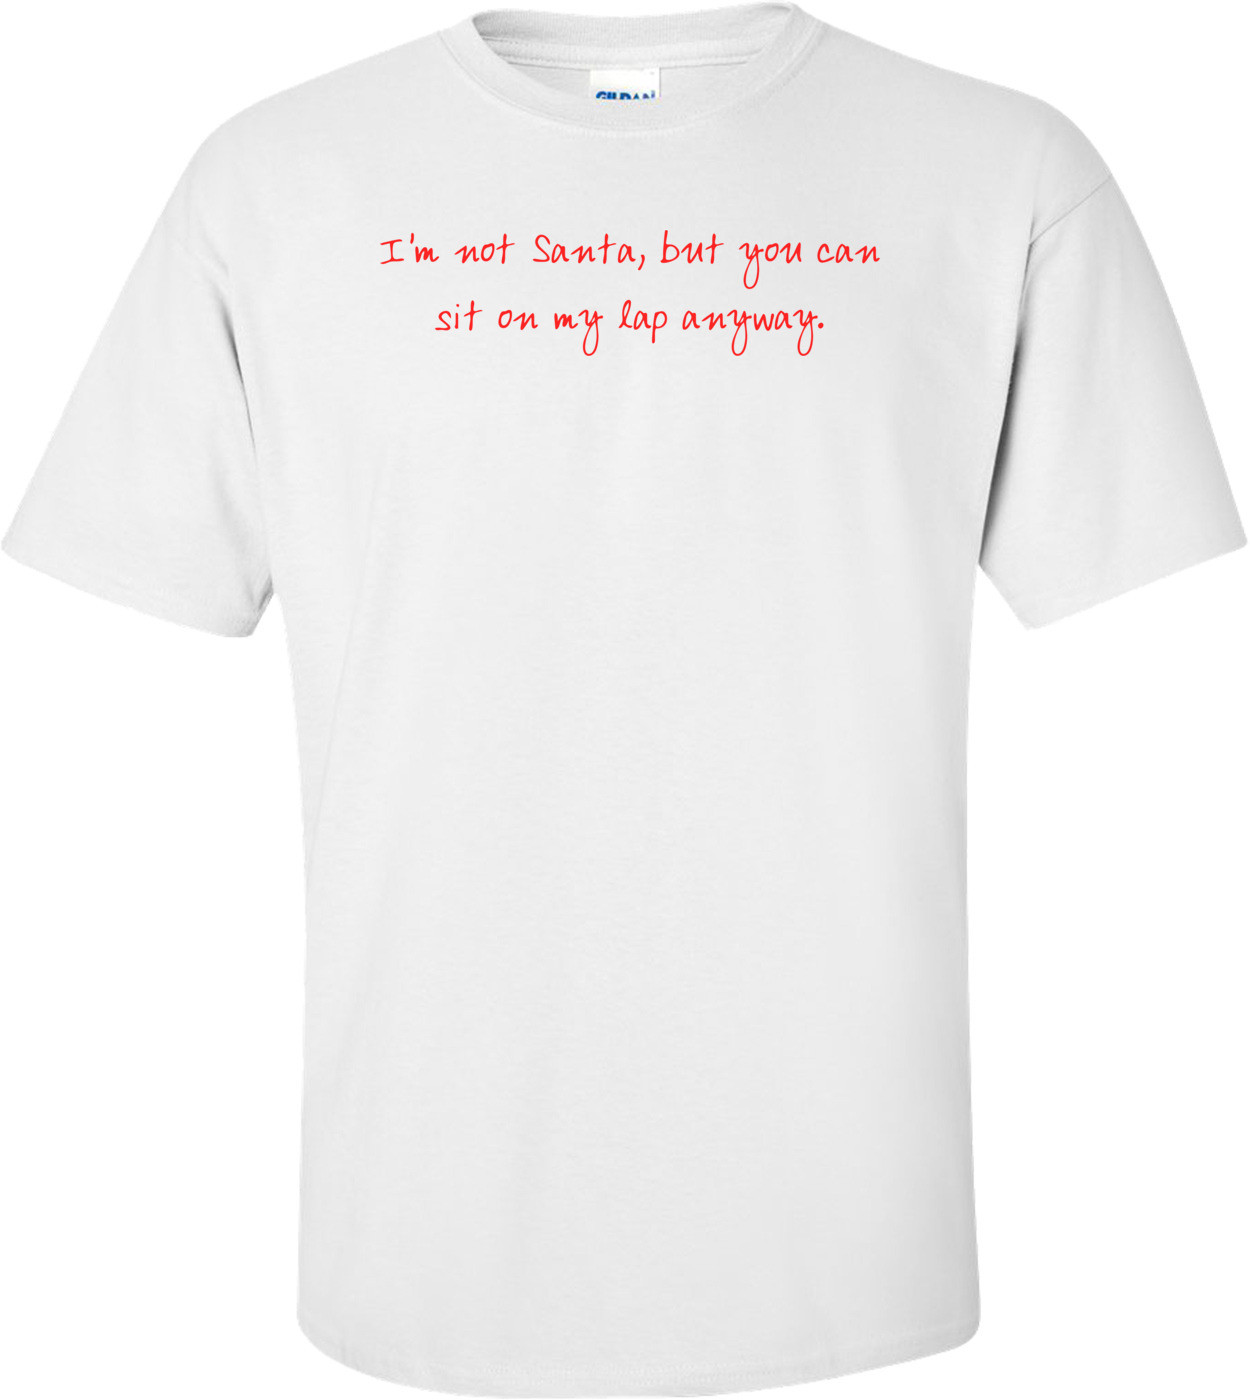 I'm not Santa, but you can sit on my lap anyway. Shirt